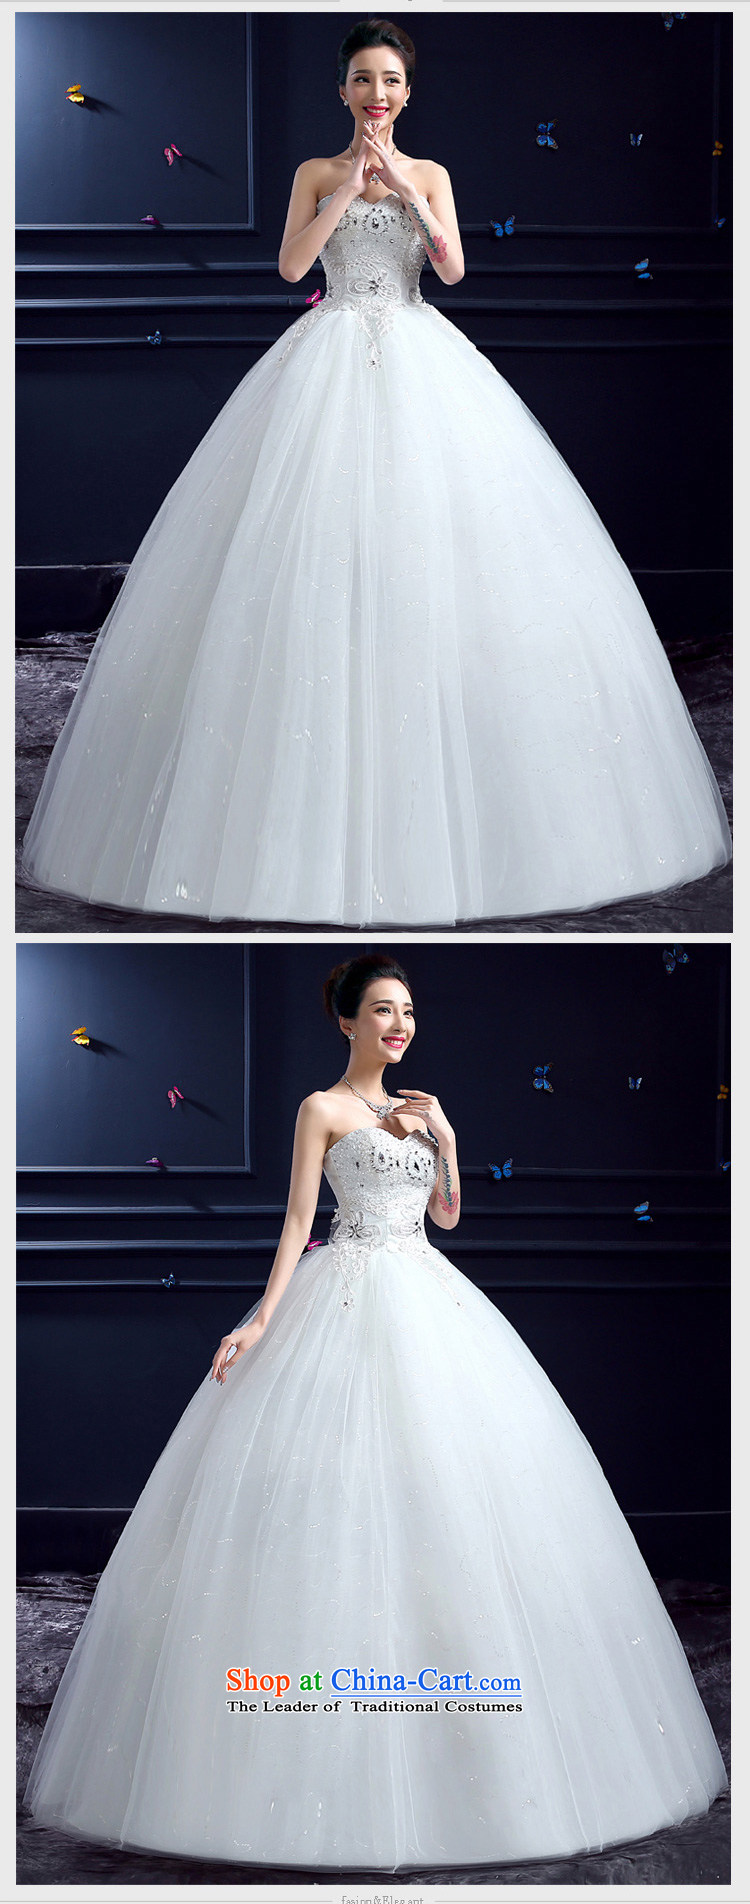 Enchanting Traditional Korean Wedding Dress Ornament - All Wedding ...